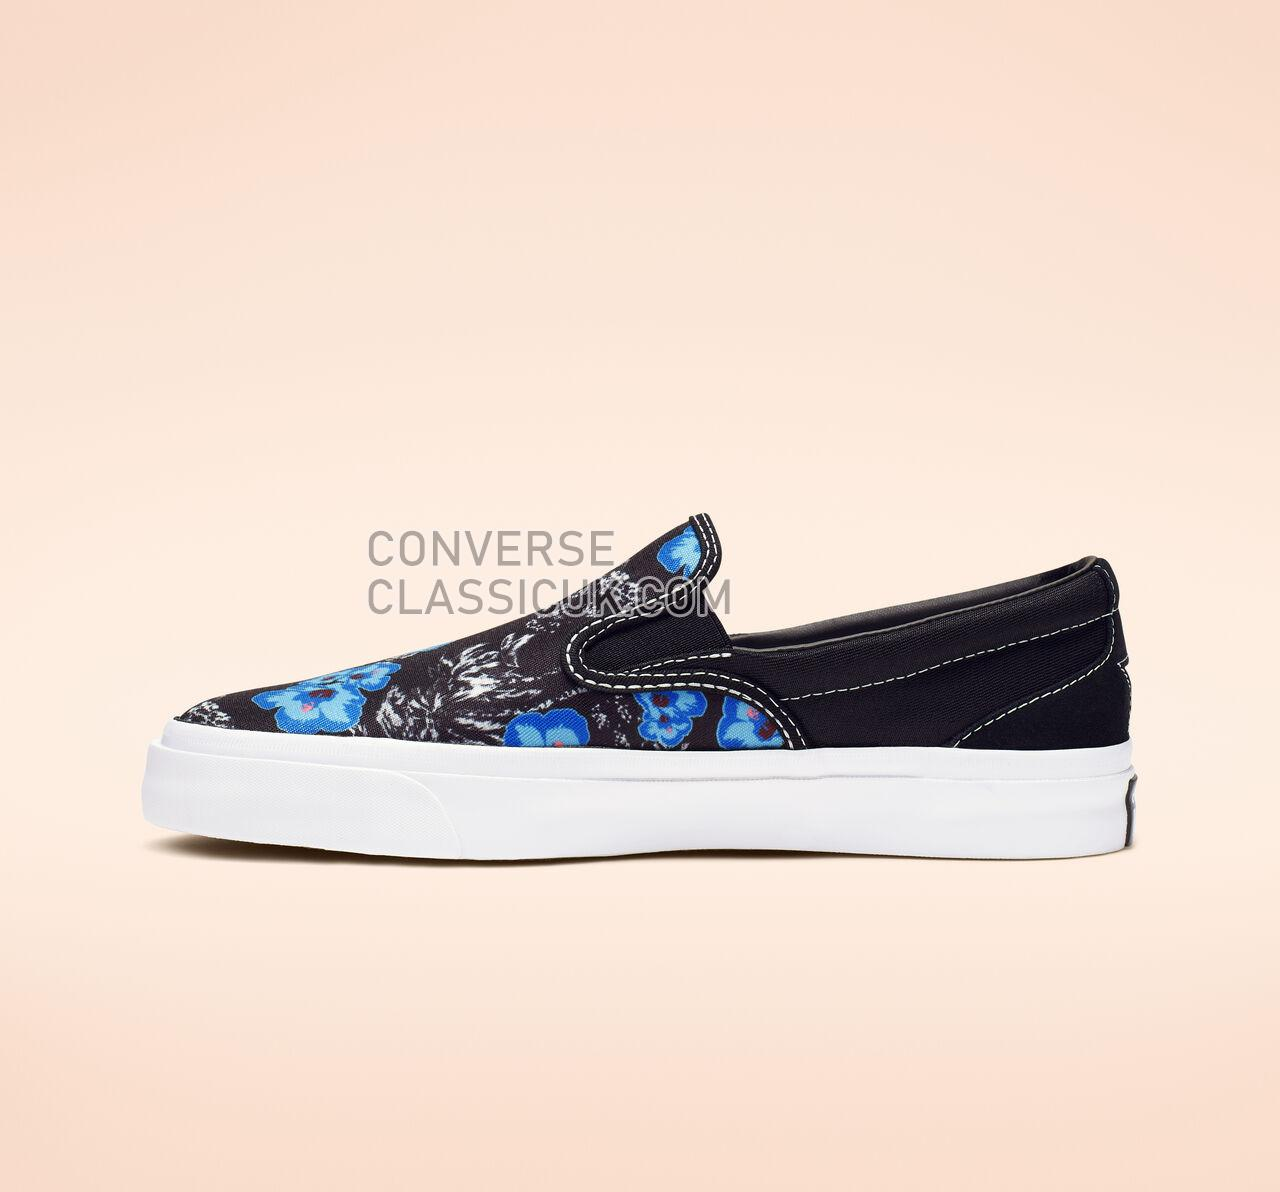 Converse One Star CC Paradise Floral Slip Mens Womens Unisex 164228C Black/Totally Blue/White Shoes